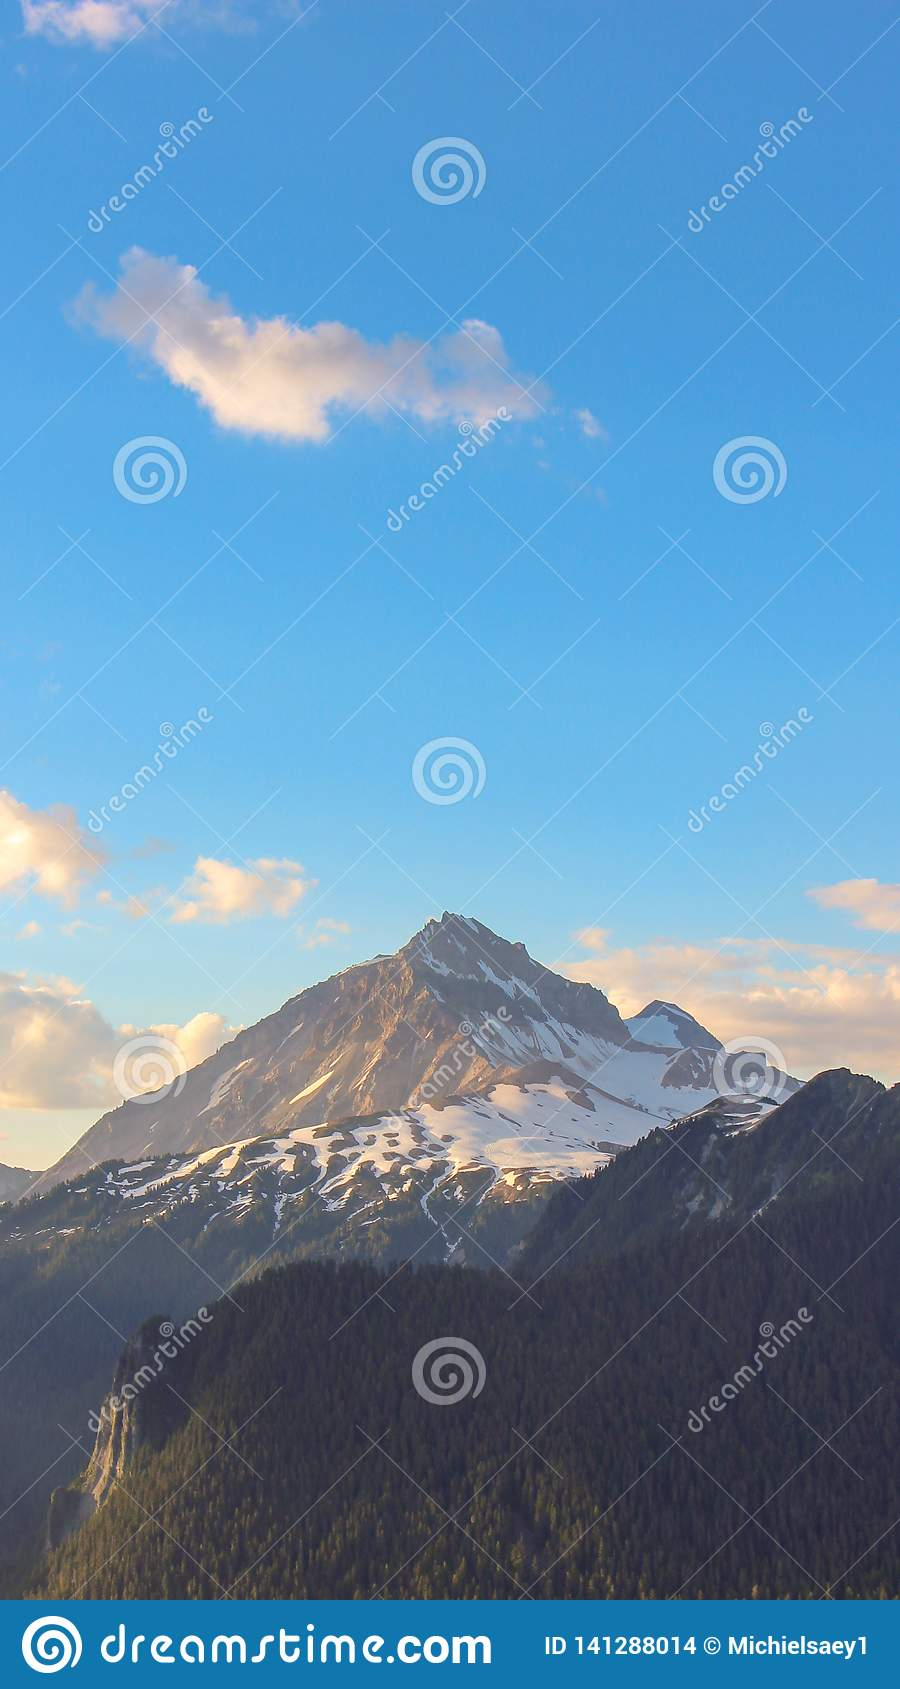 Hike mountain british colombia canada phone wallpaper